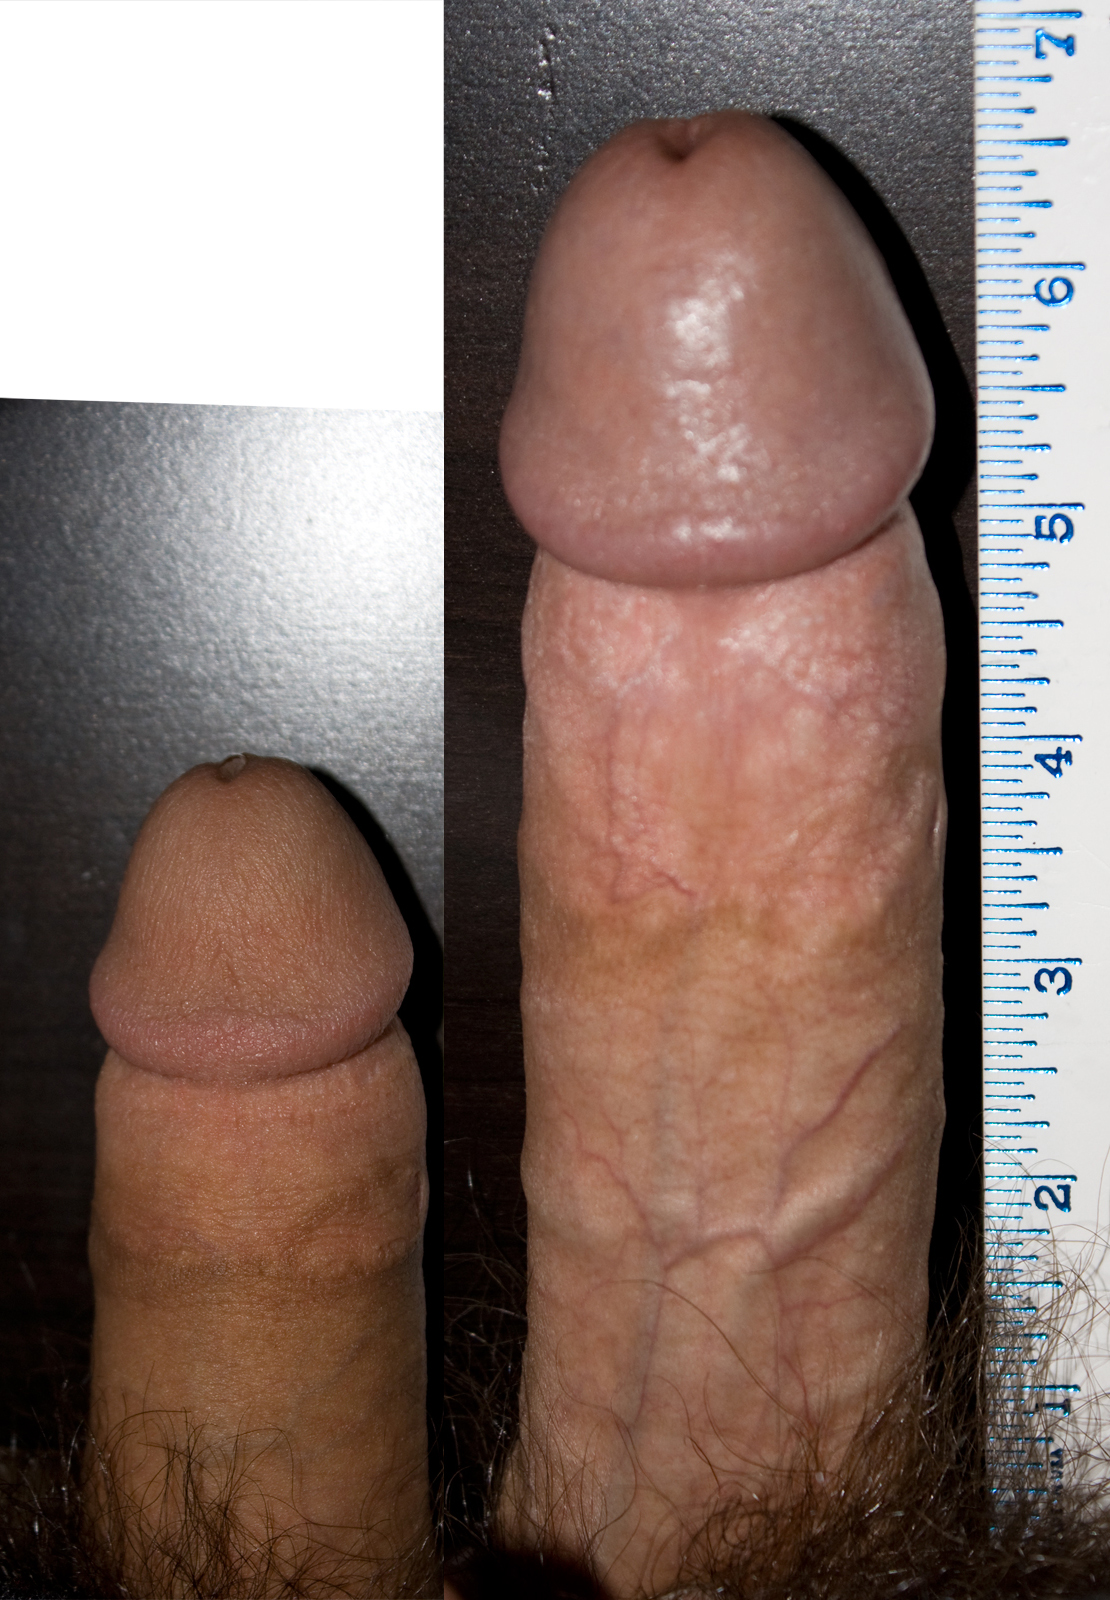 Average penis size non erect